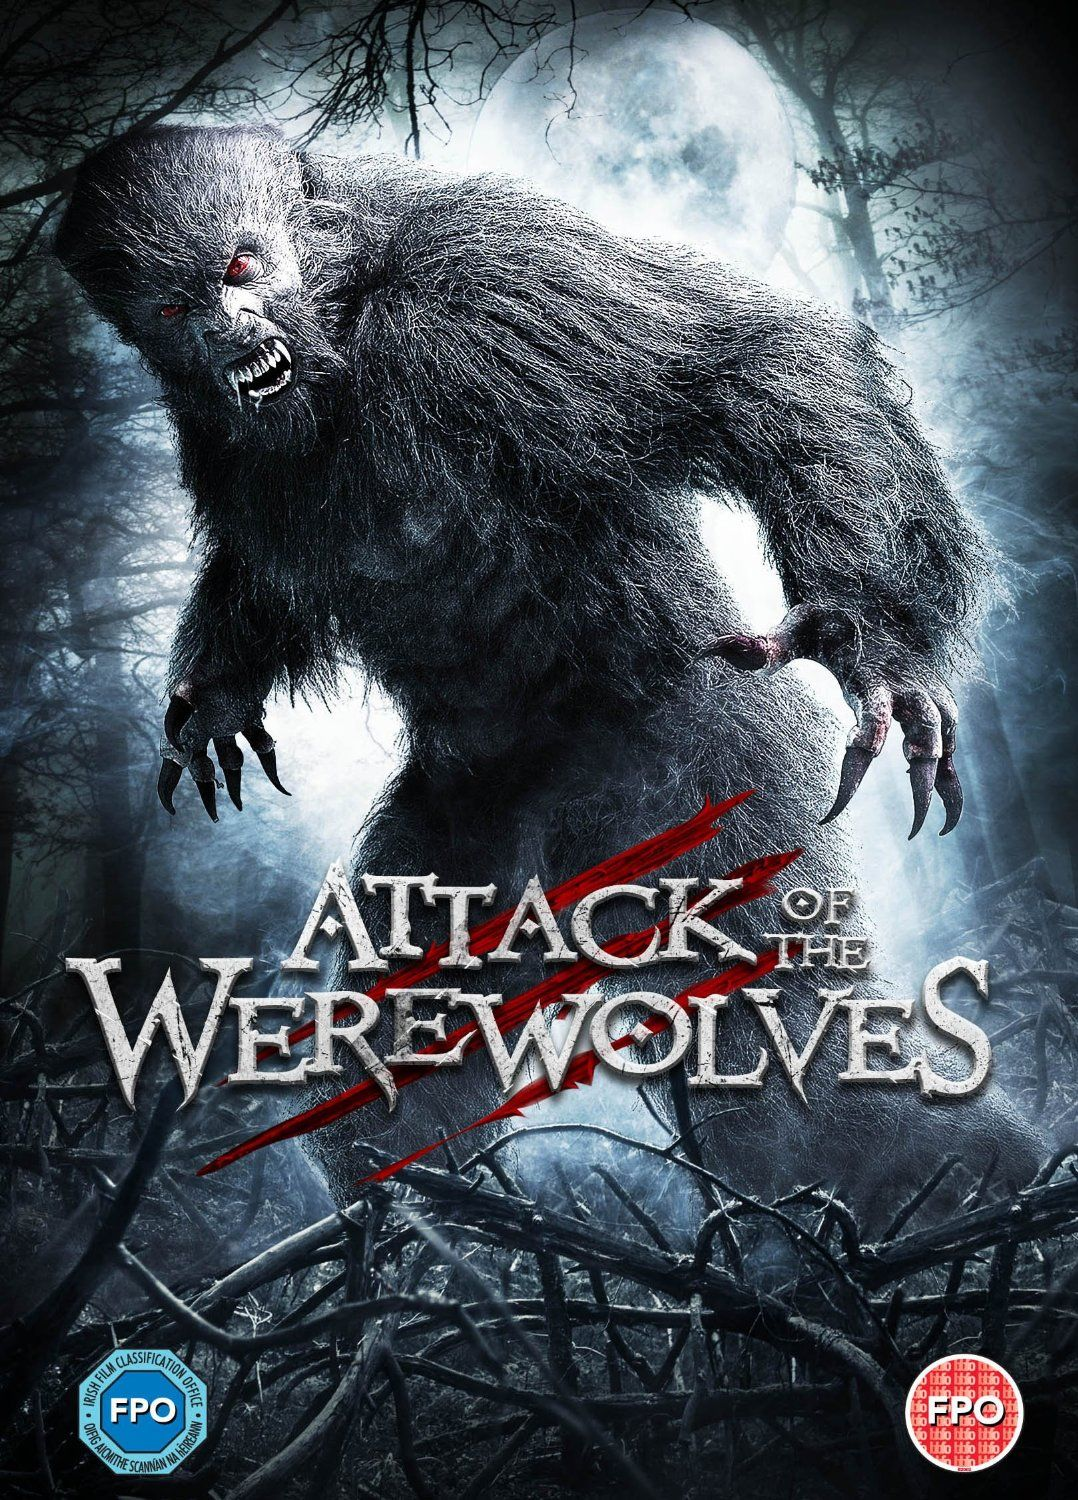 Attack of the Werewolves (DVD) Amazon.co.uk Carlos